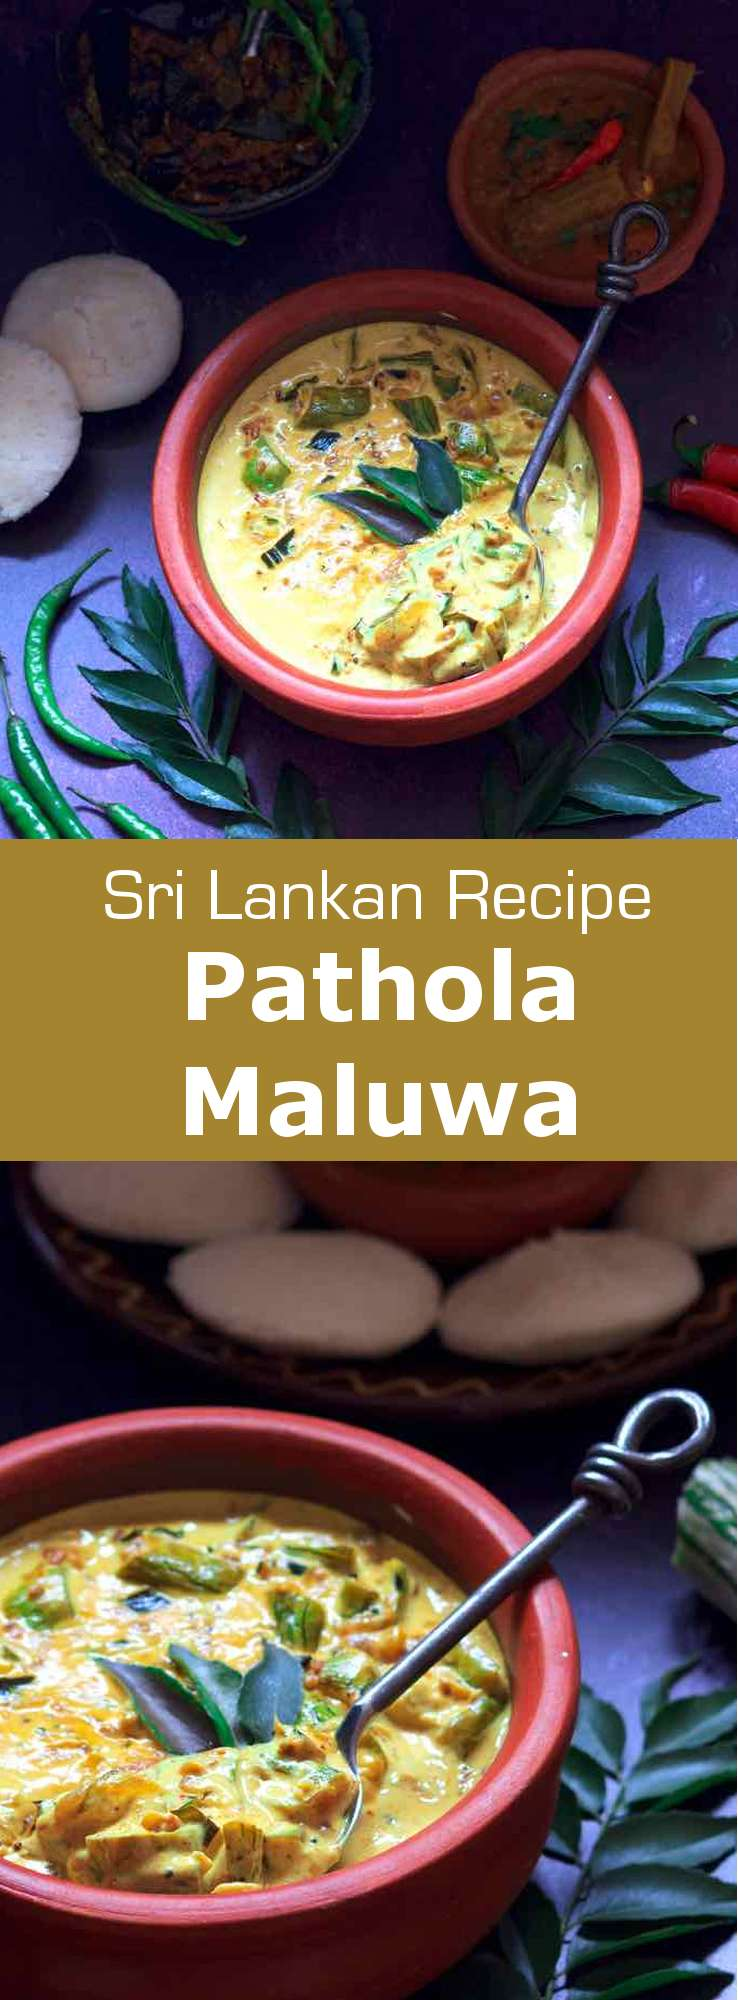 Fragrant and creamy, with a very slightly bitter edge, pathola maluwa (snake gourd curry) is one of Sri Lanka's less fiery dishes, yet is no less delicious than its spicier counterparts. #SriLanka #SriLankanCuisine #SriLankanCurry #SriLankanRecipe #WorldCuisine #196flavors